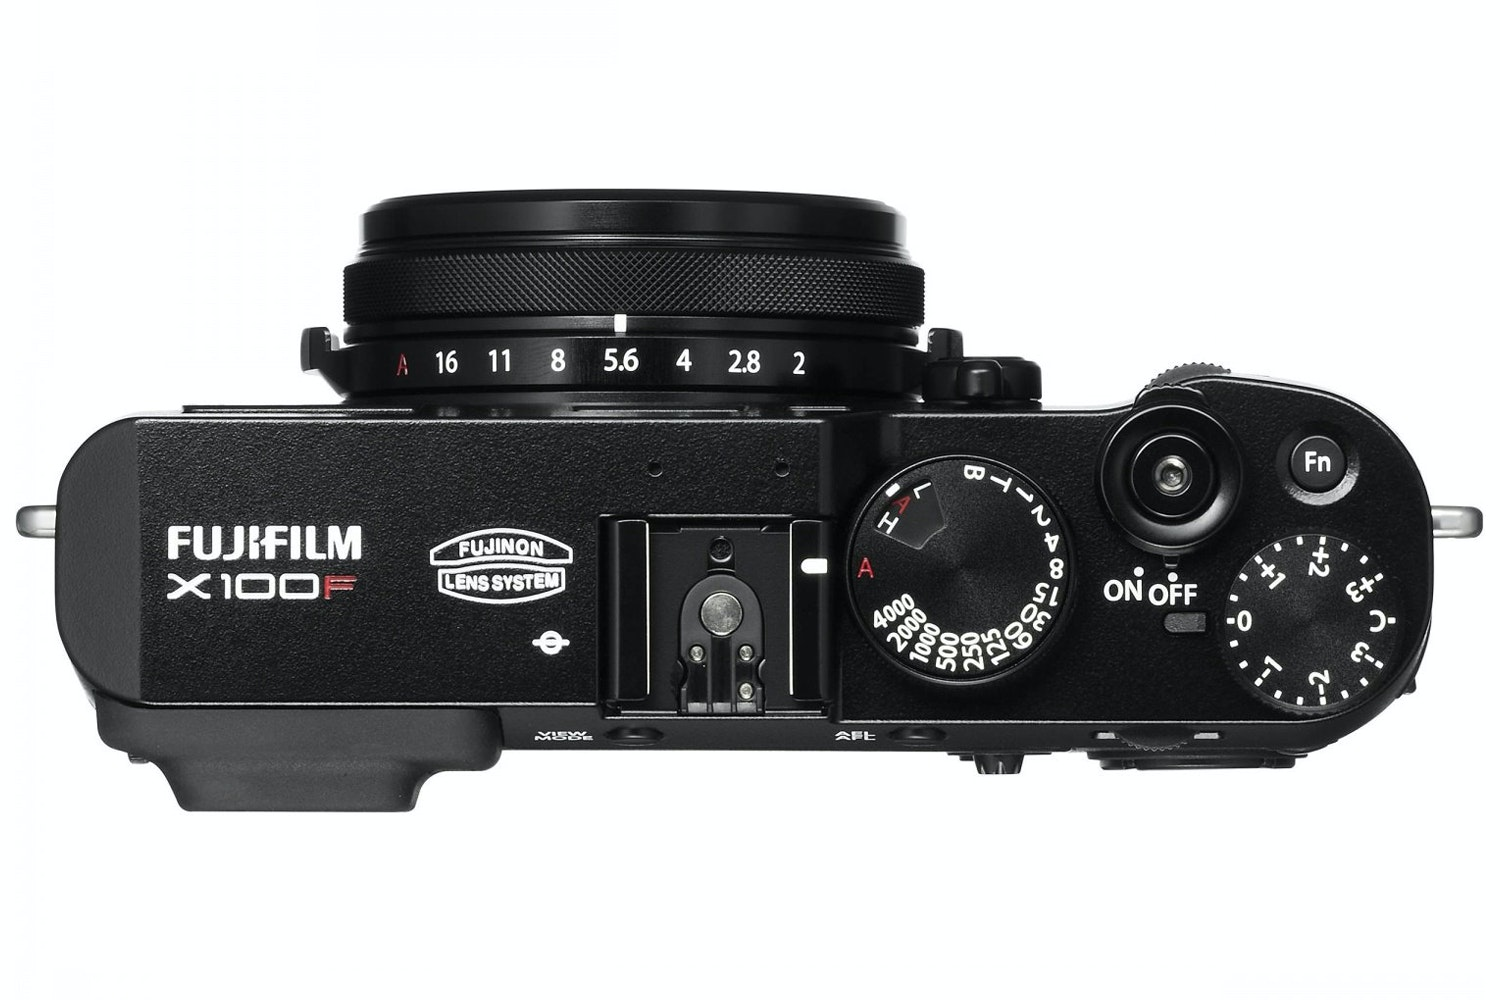 Fujifilm X100F Digital Camera | Black